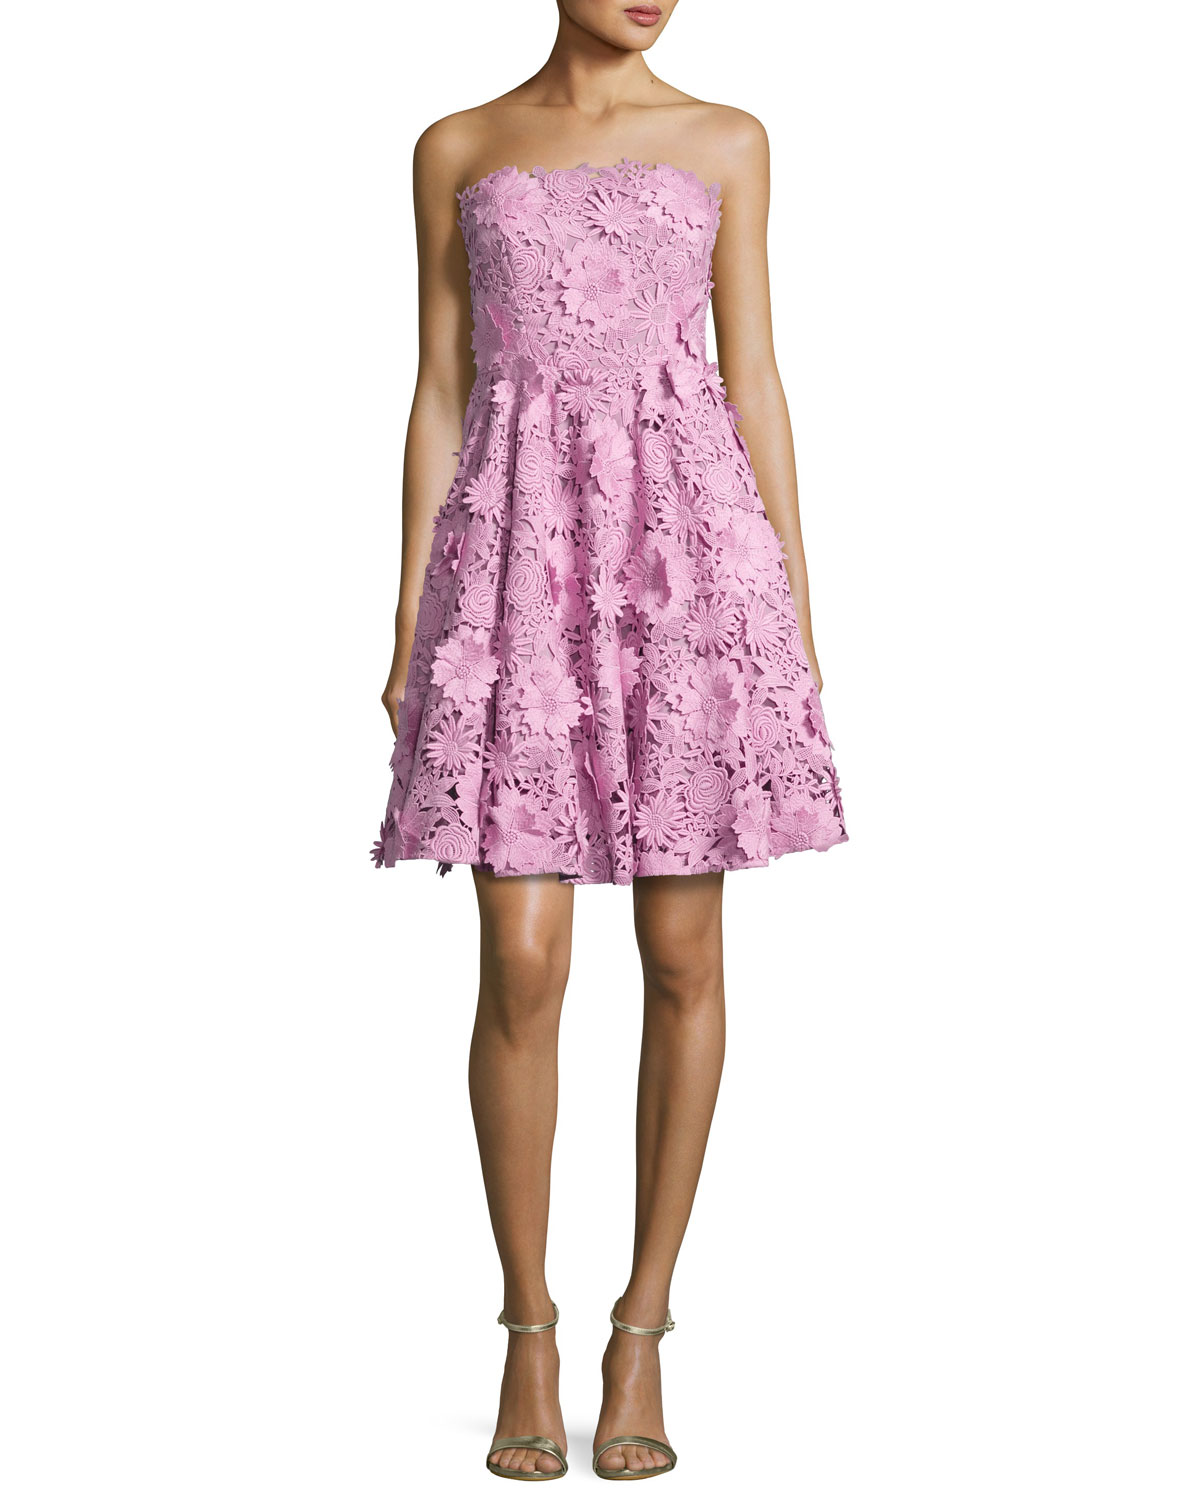 Milly Meg Strapless 3D Floral Cocktail Dress, Pink | Neiman Marcus